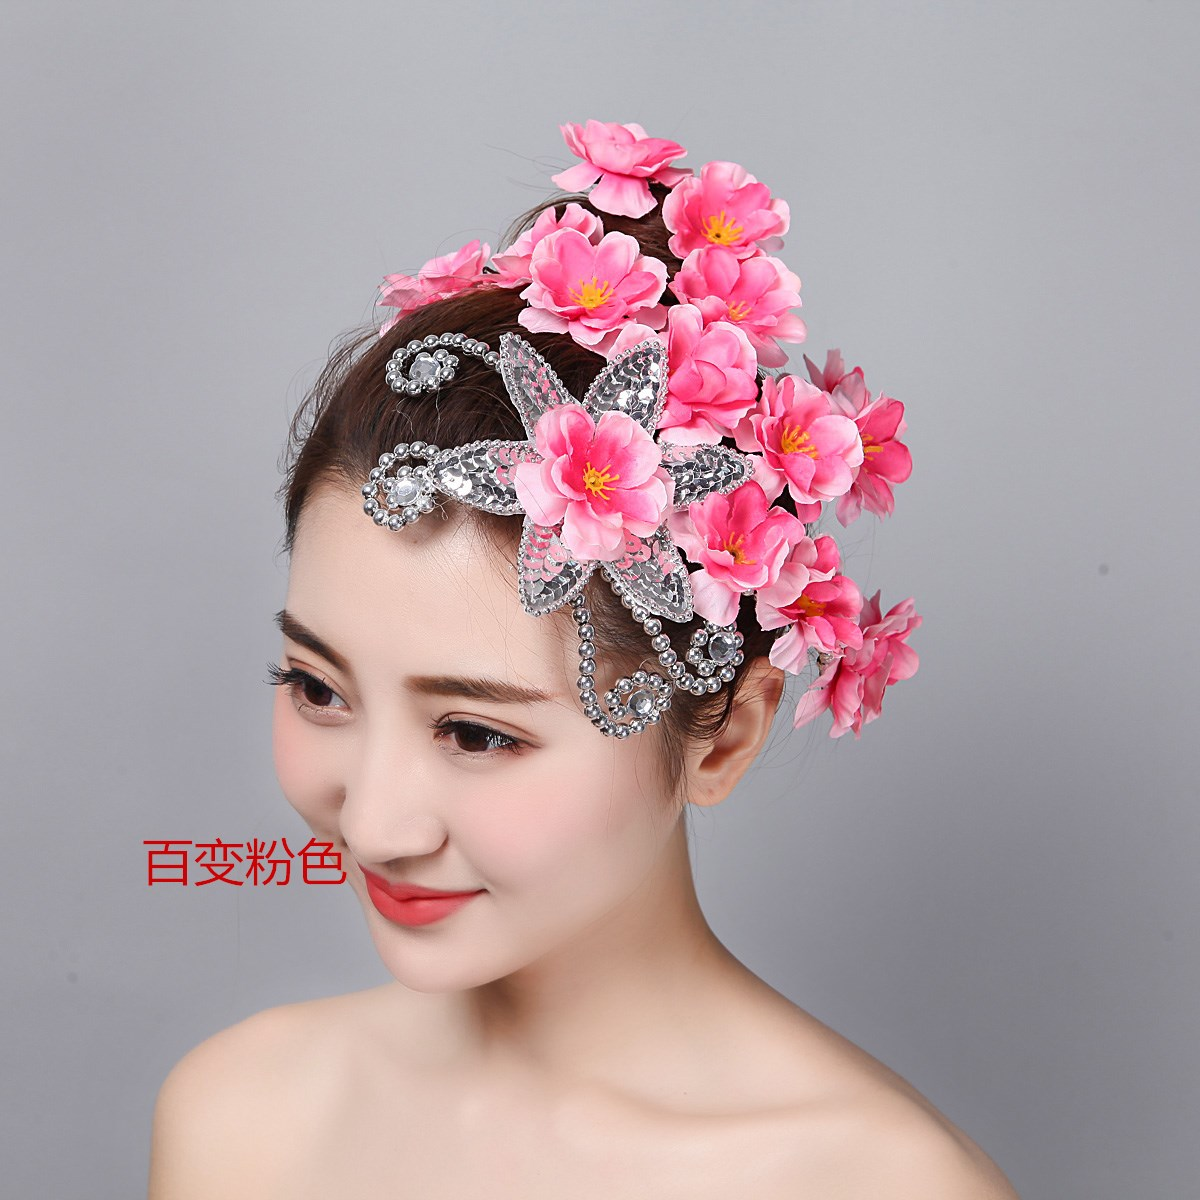 Headwear For Women  Yangko Dance Headdress